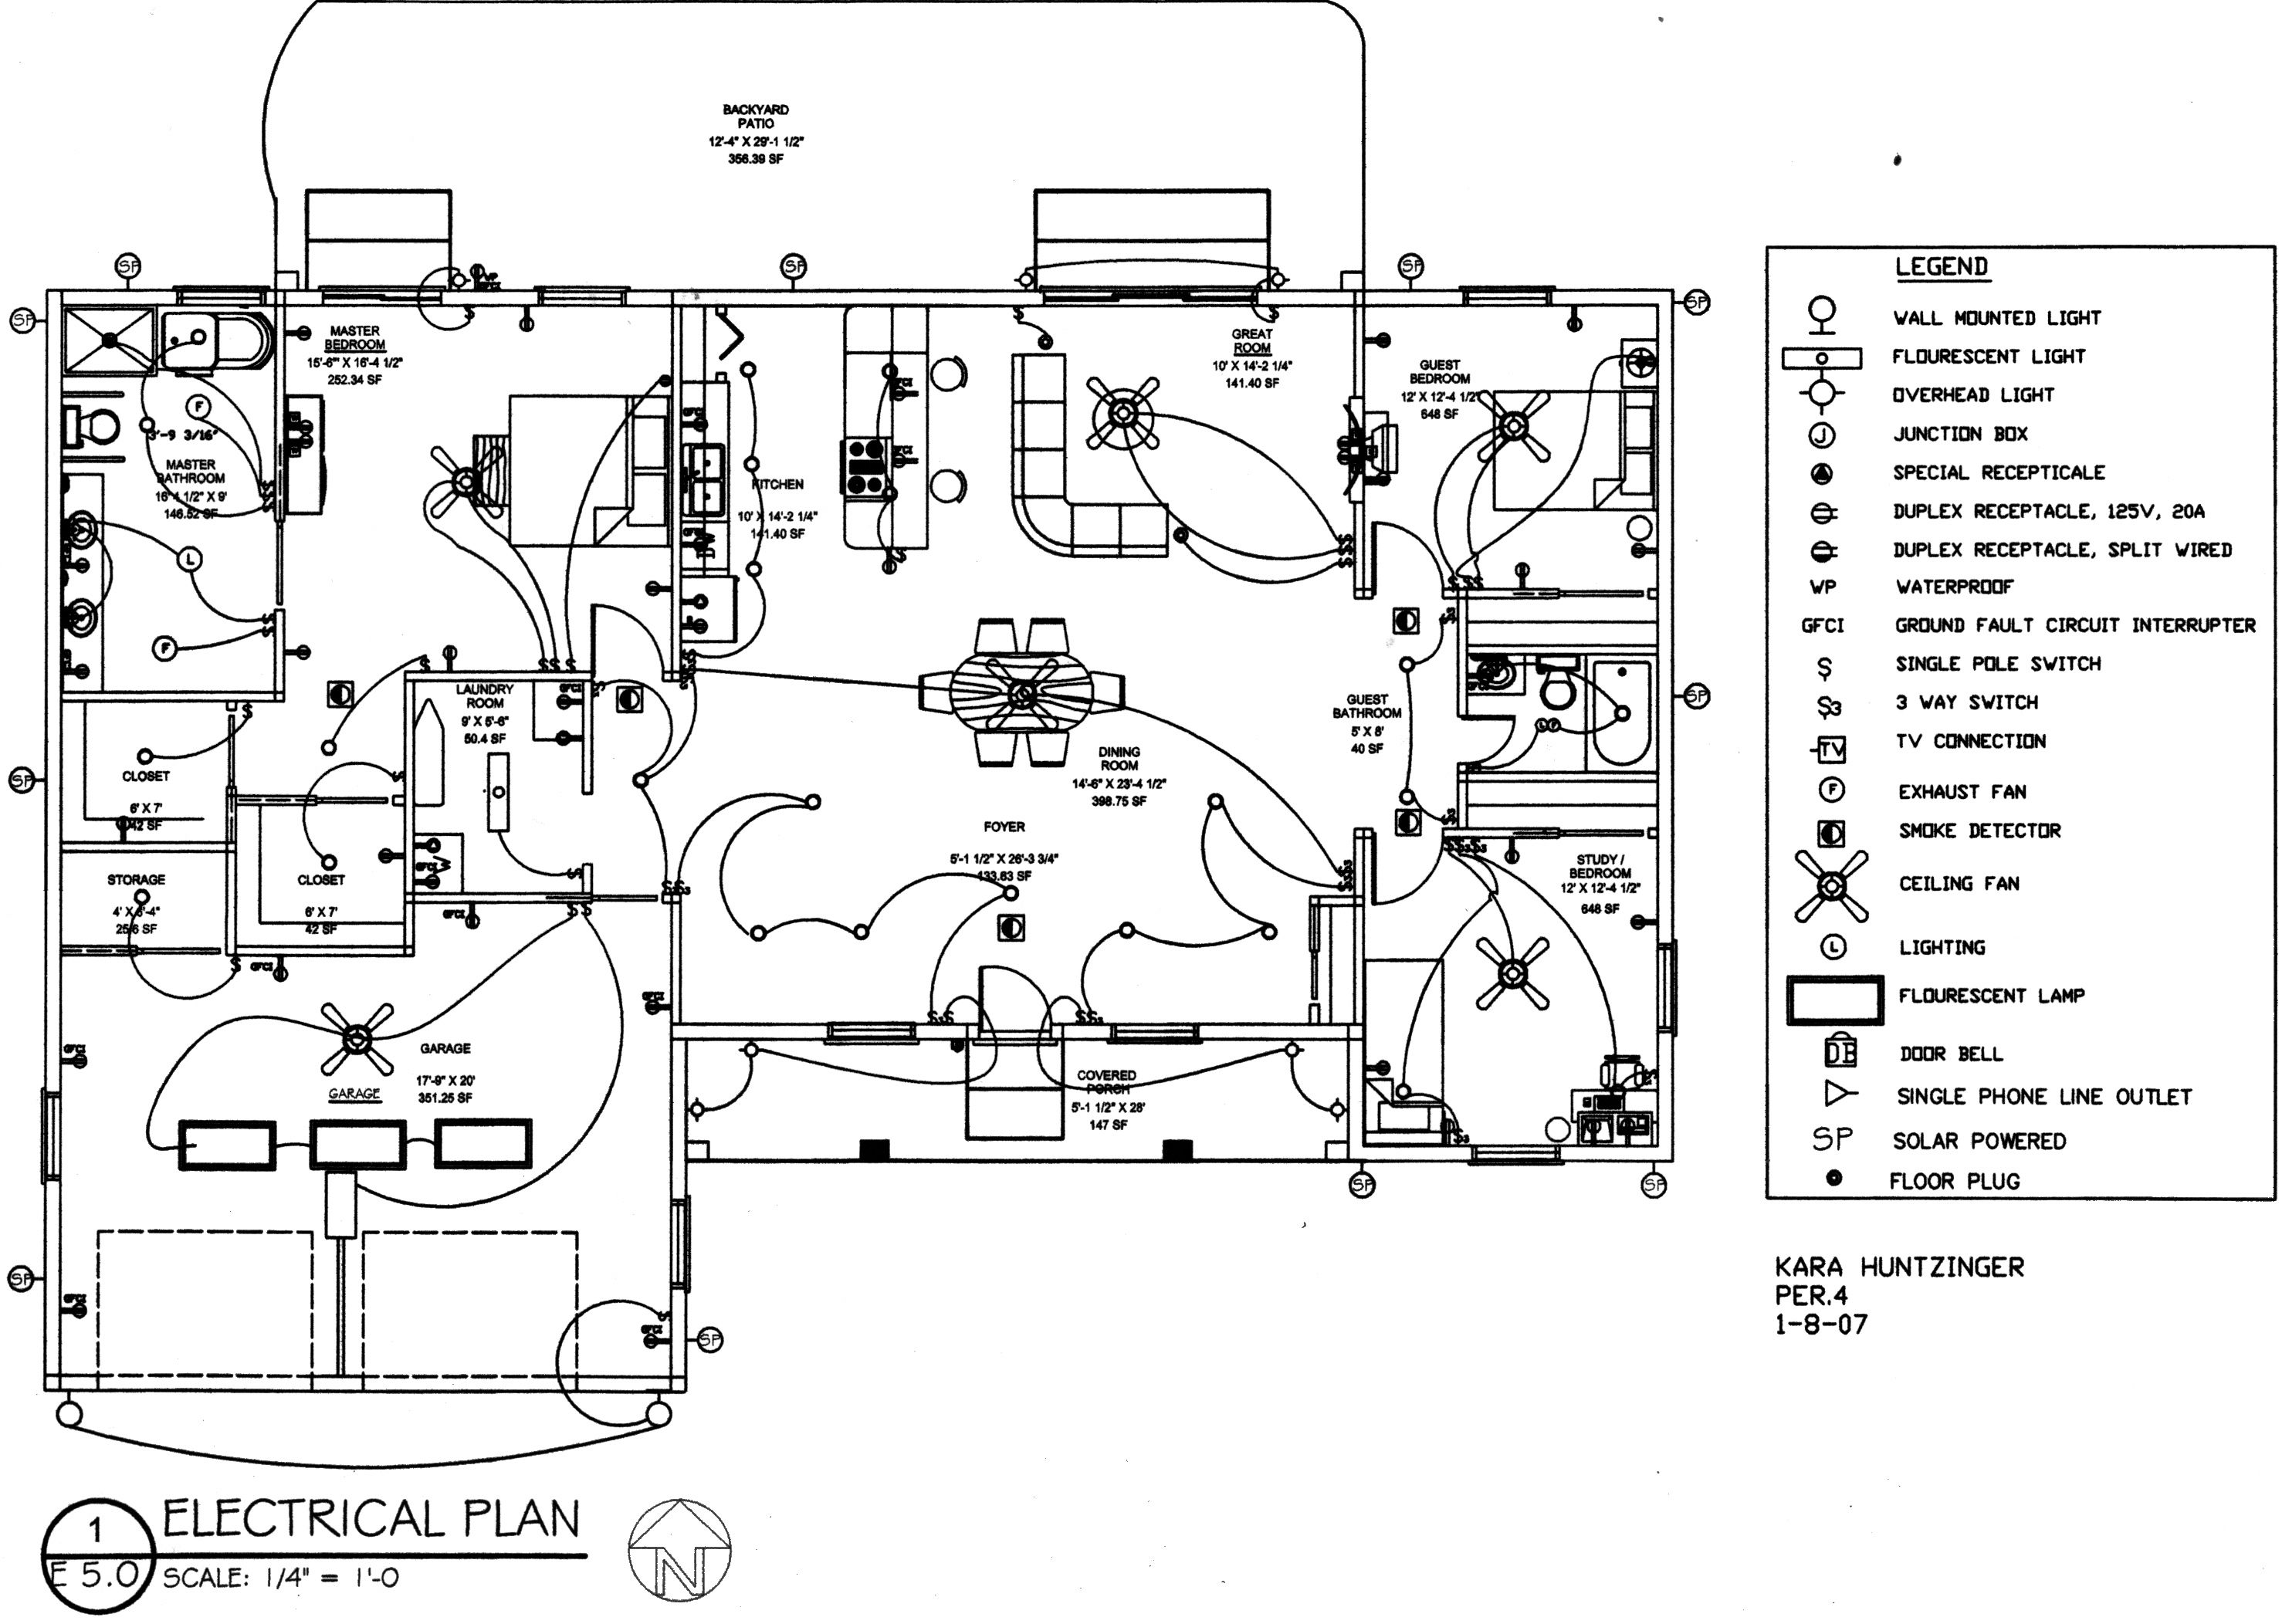 medium resolution of electrical plan house wiring library 3 bedroom 2 story house plans electrical plan 2 bedroom